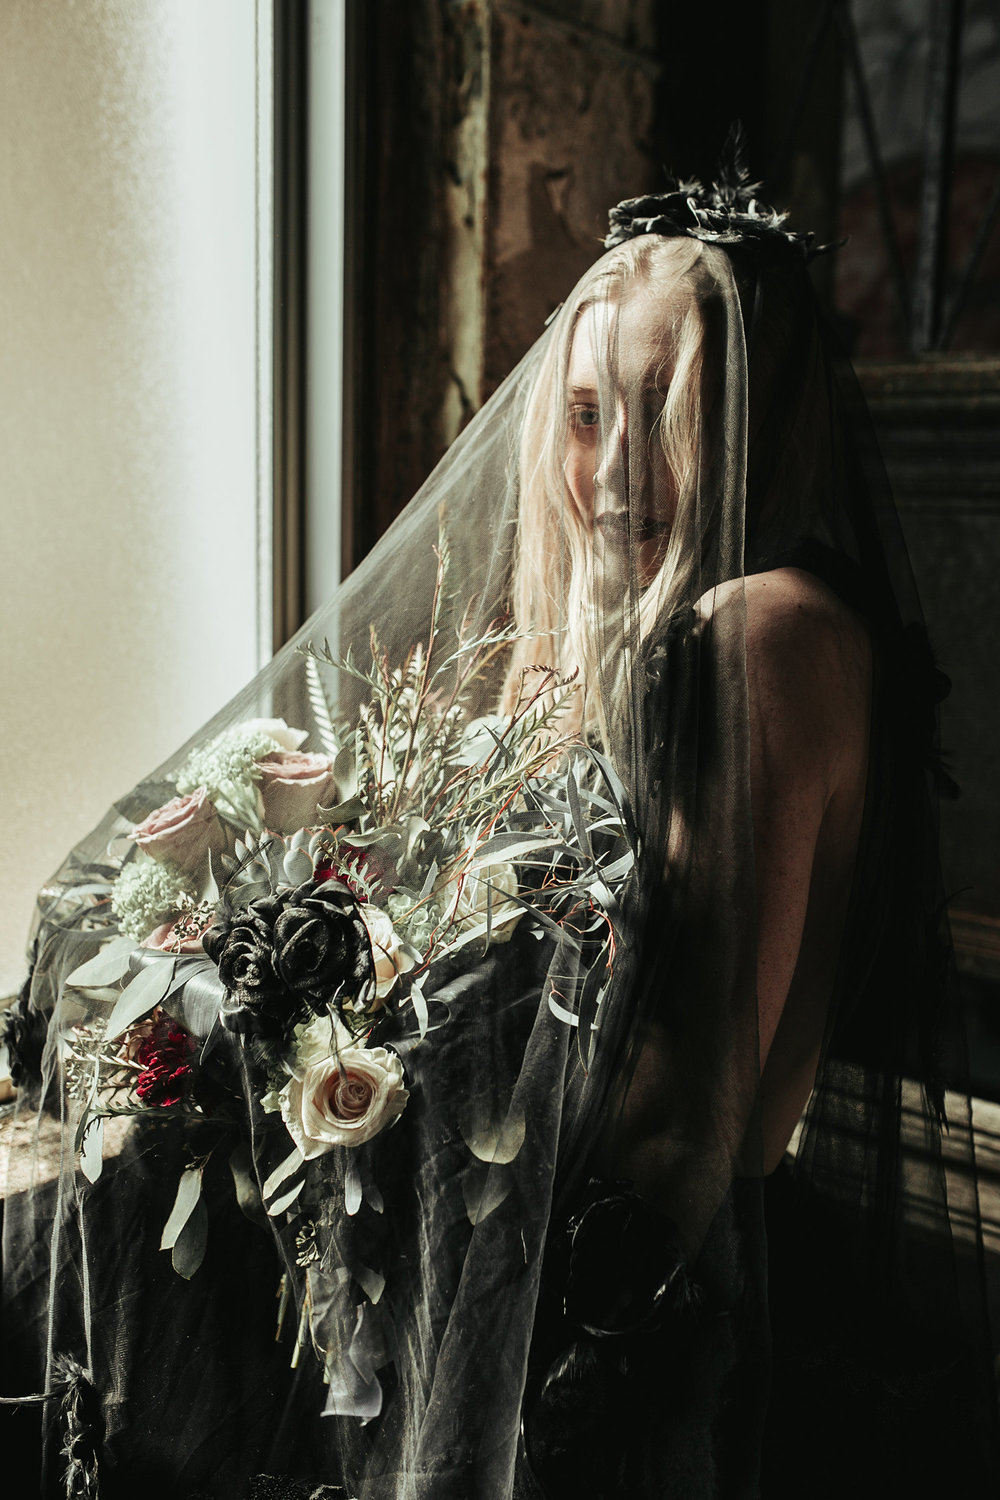 bride-holding-flowers-under-black-veil-black-dress-burlington-iowa-gothic-wedding-elopement-raelyn-ramey-photography-113.jpg